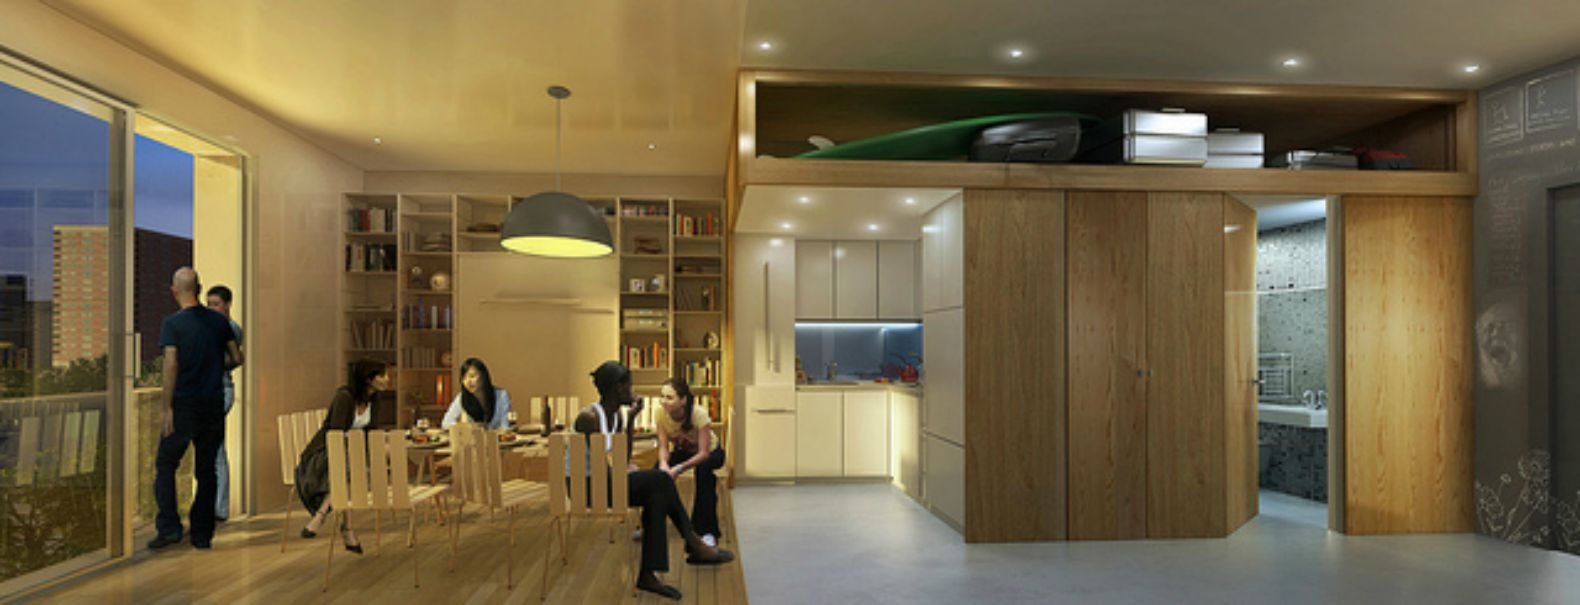 Apply to live in Manhattan's first micro apartments for as low as $950 a month